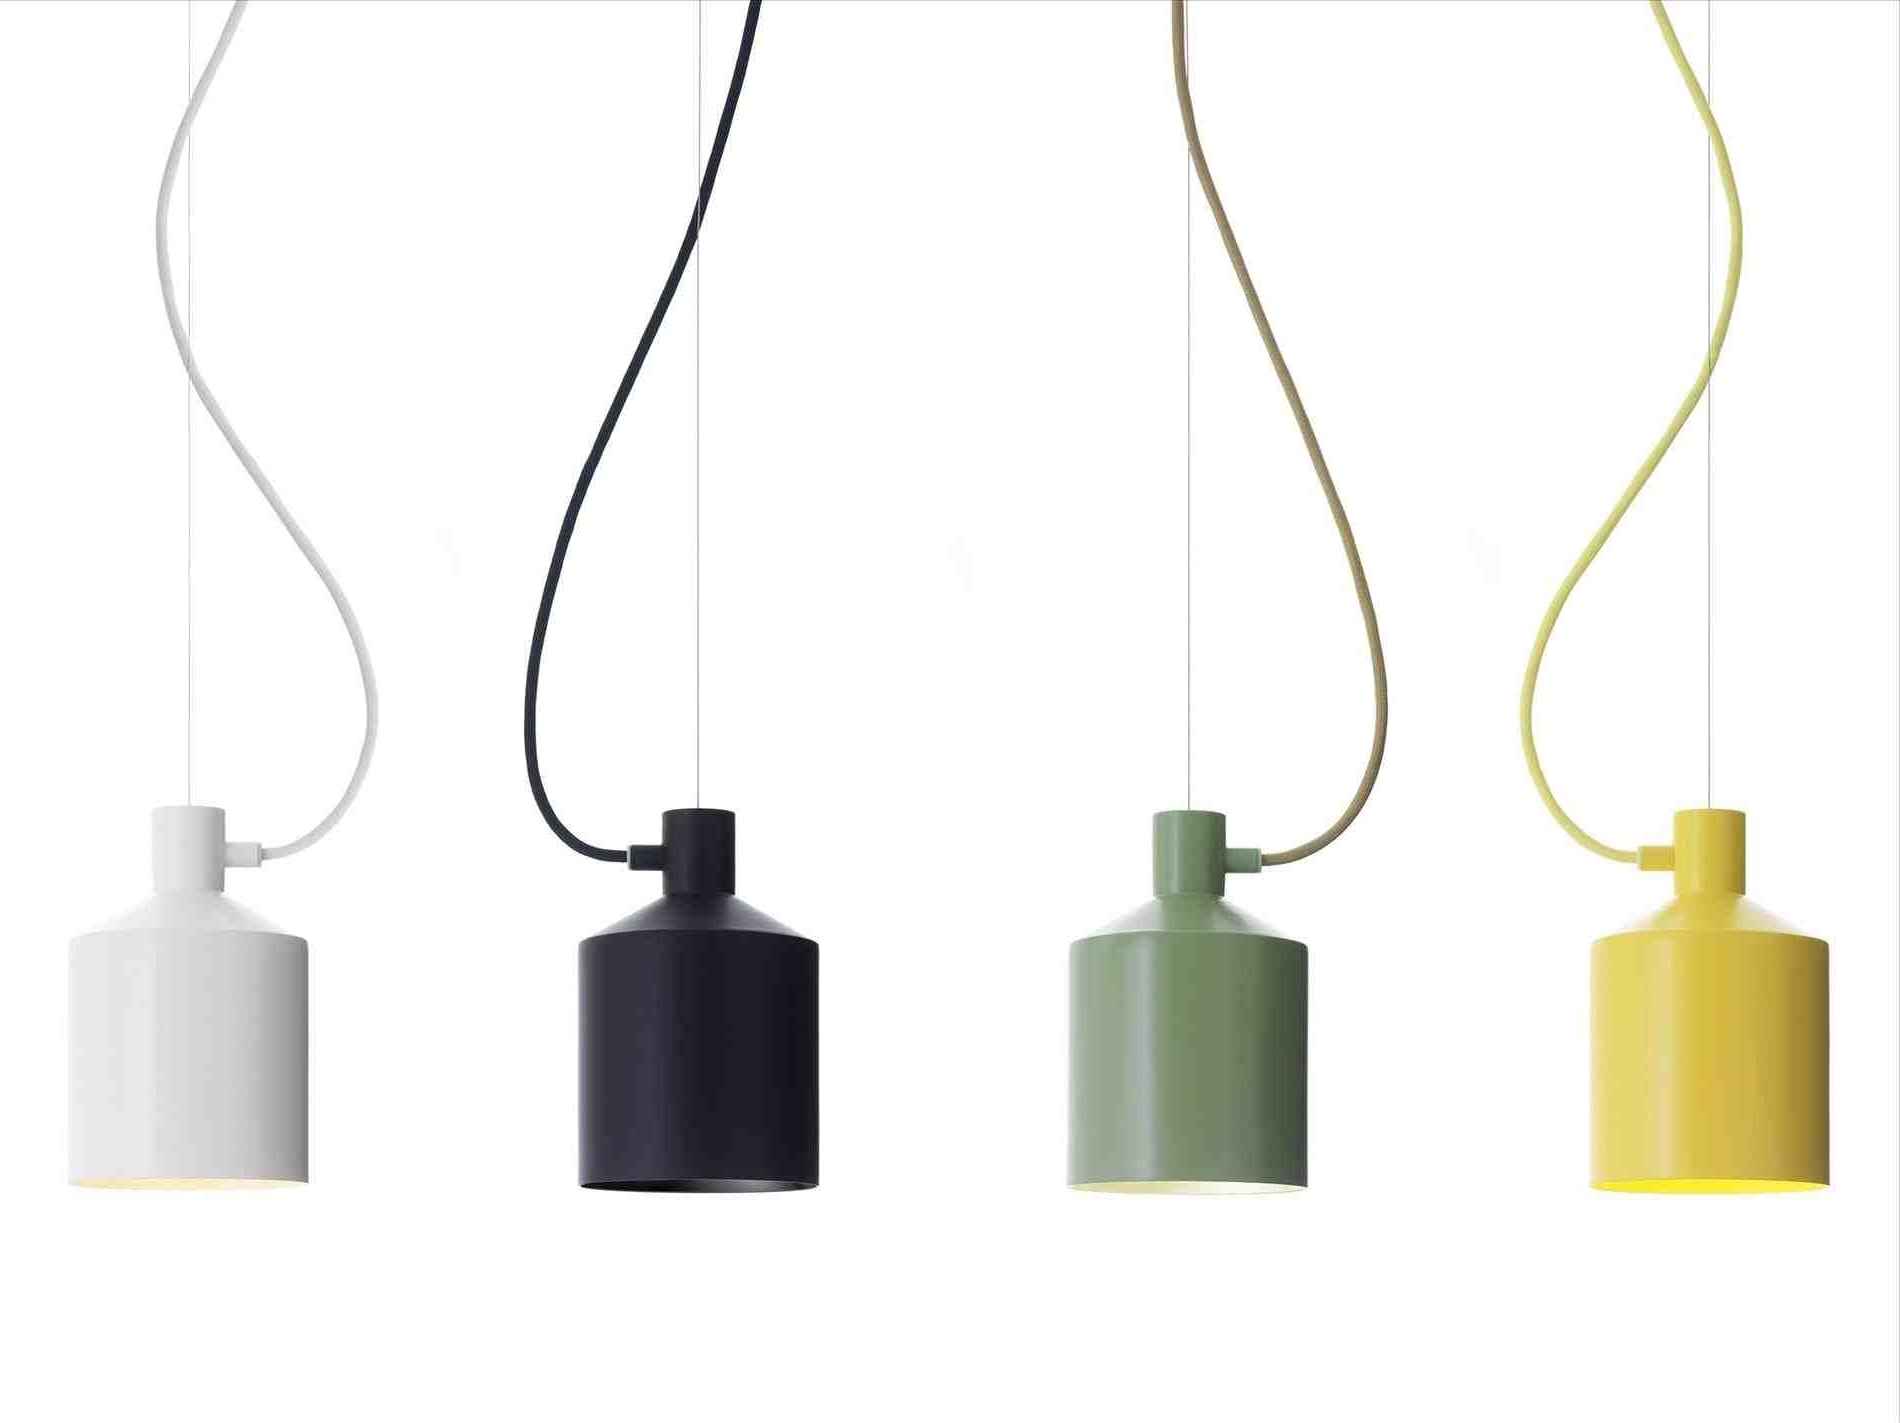 Outdoor Wall Lighting At Walmart In Current Lighting : Best Plug In Hanging Light Ideas On Pinterest Lights That (View 11 of 20)